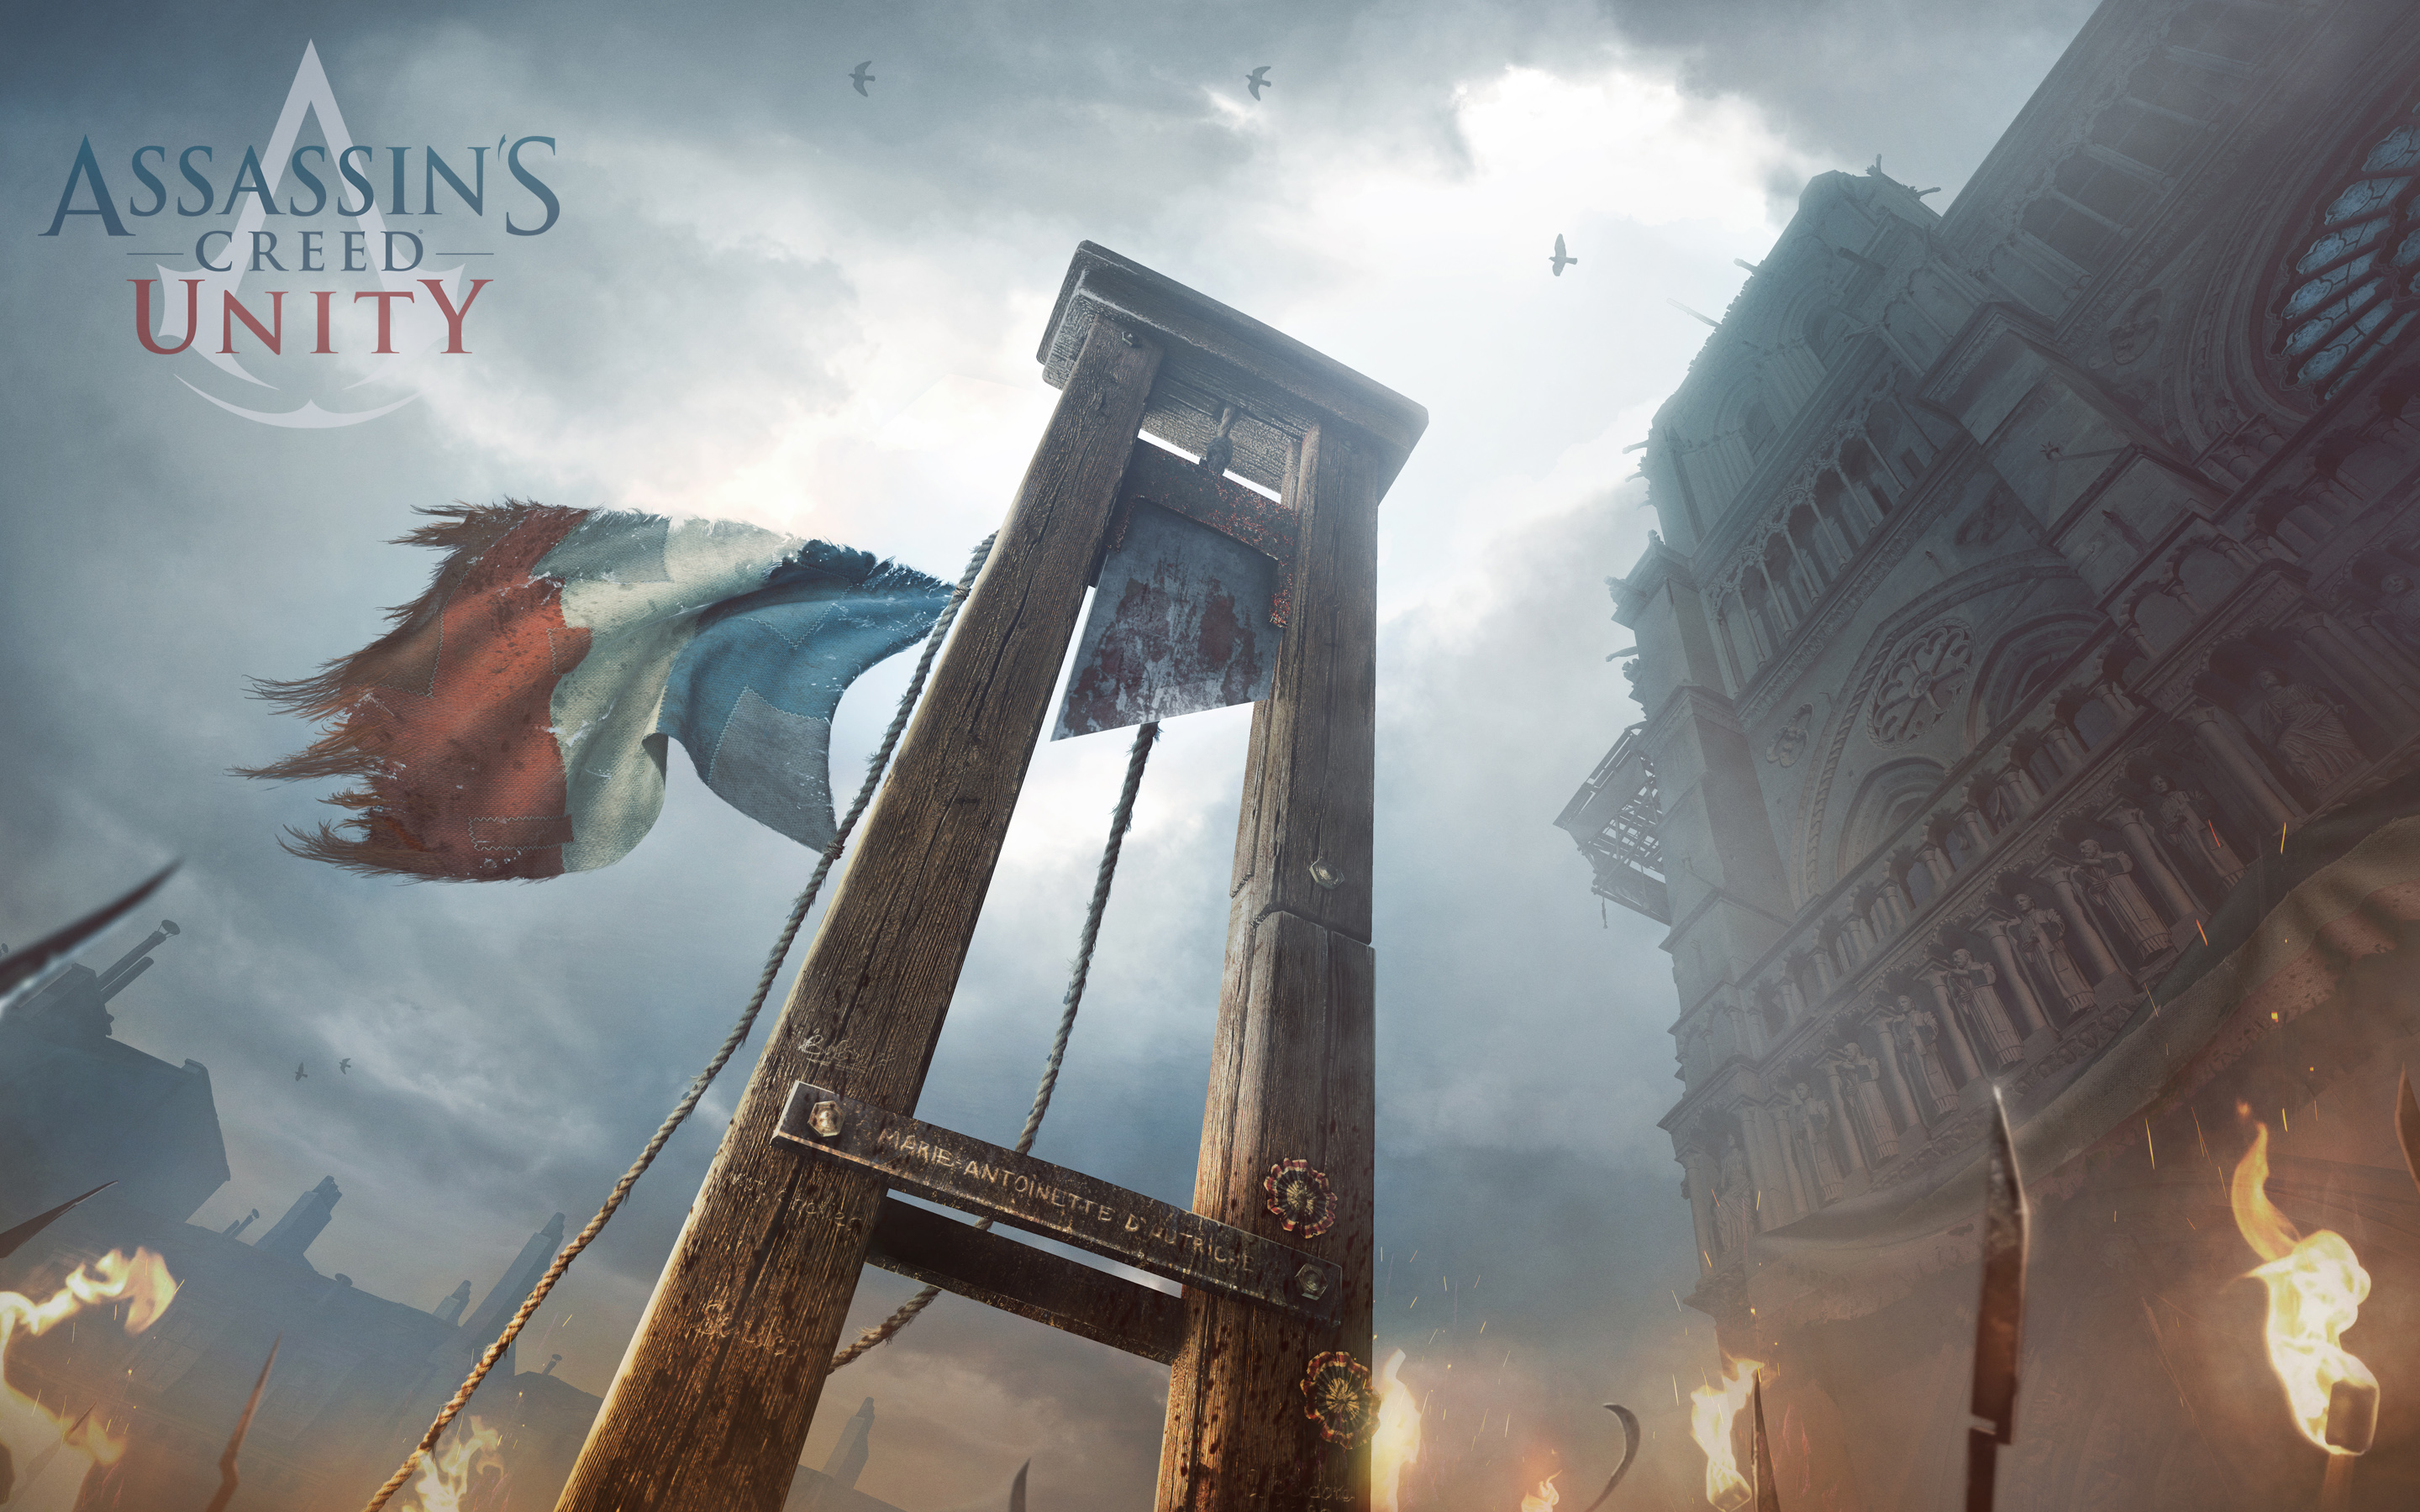 Assassin's Creed and Call of Duty continue downward trend